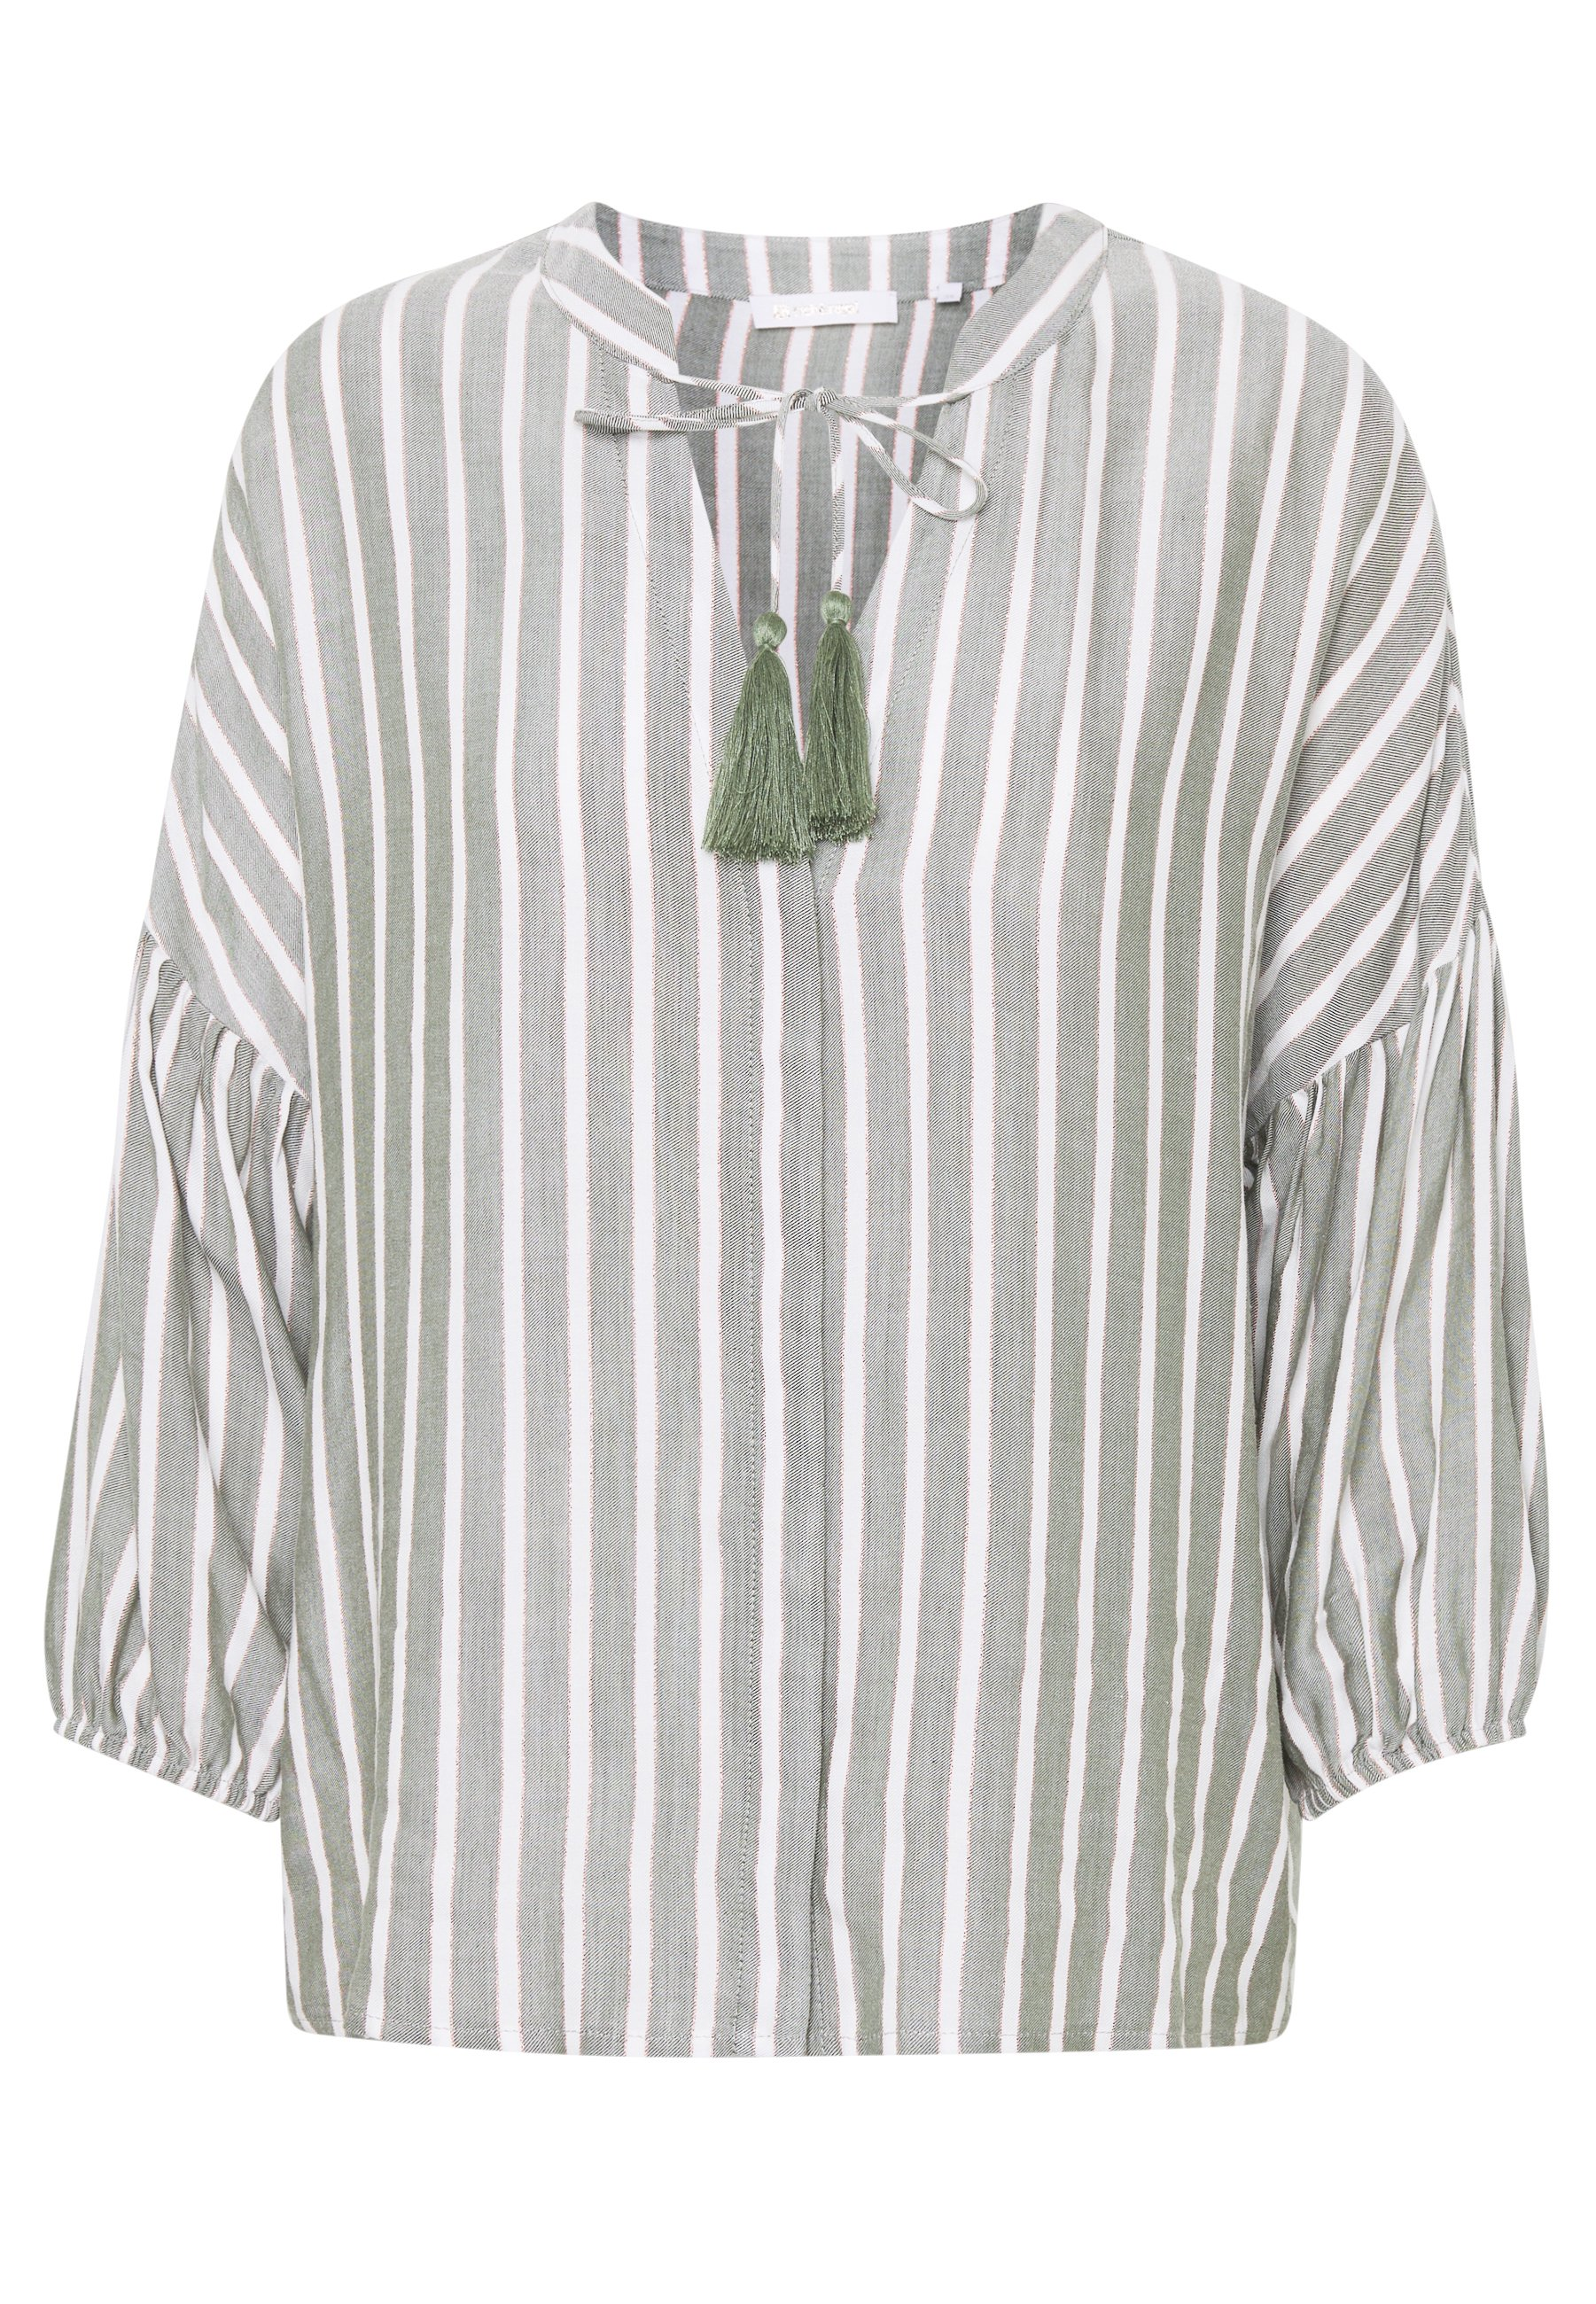 Rich & Royal Blouse With Tassels - Bluser Safari Green